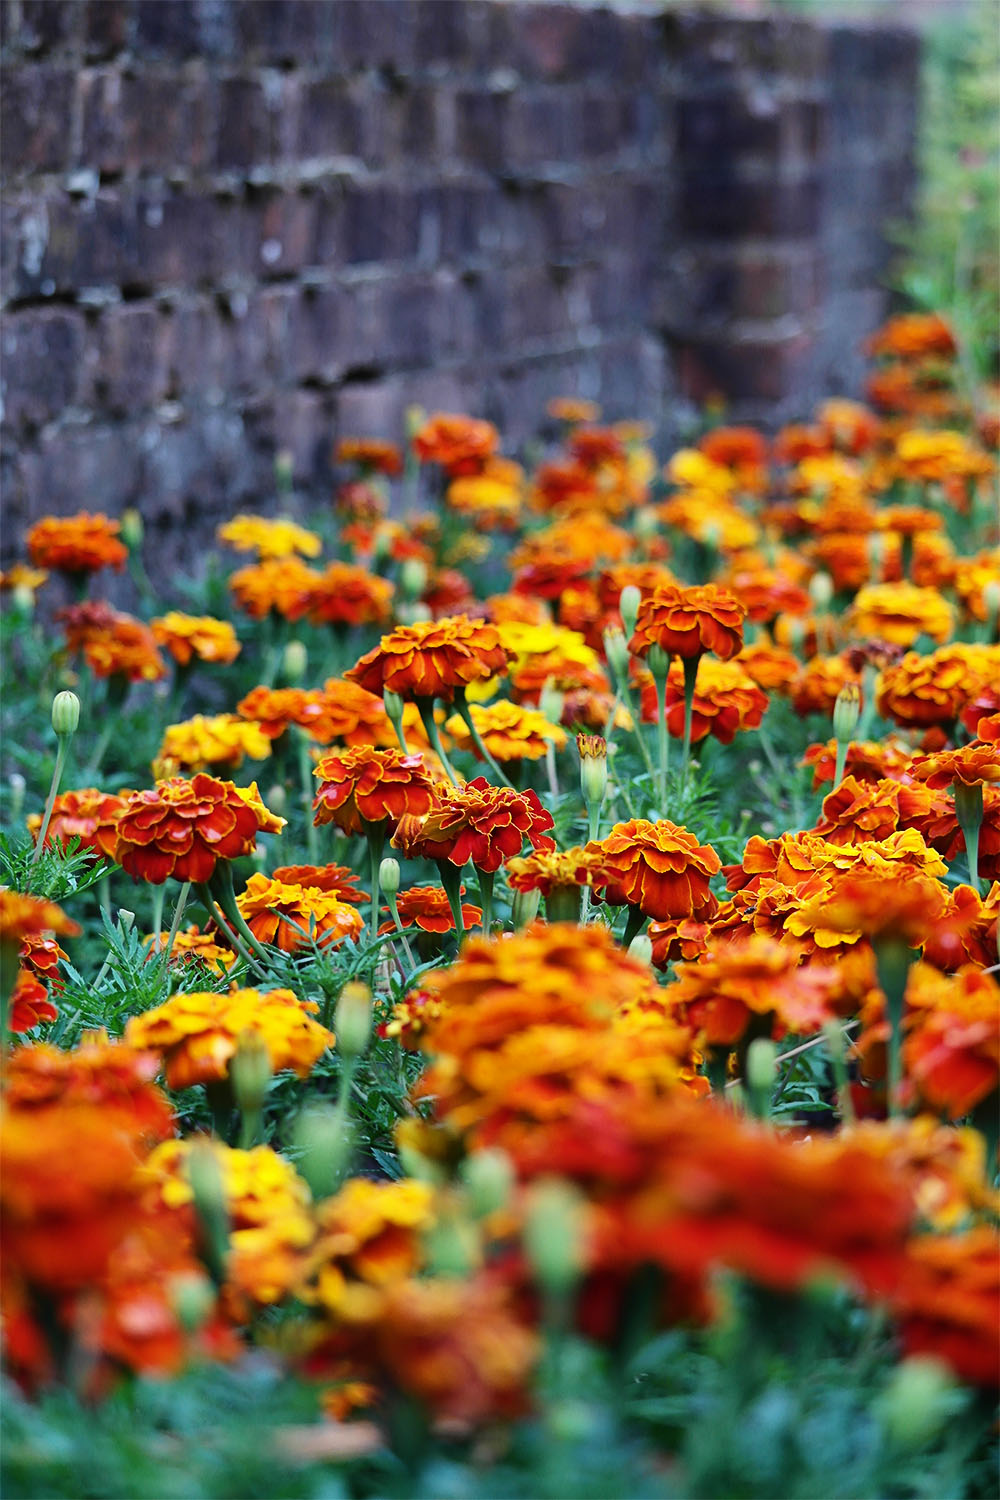 Rows of marigolds outside the greenhouse